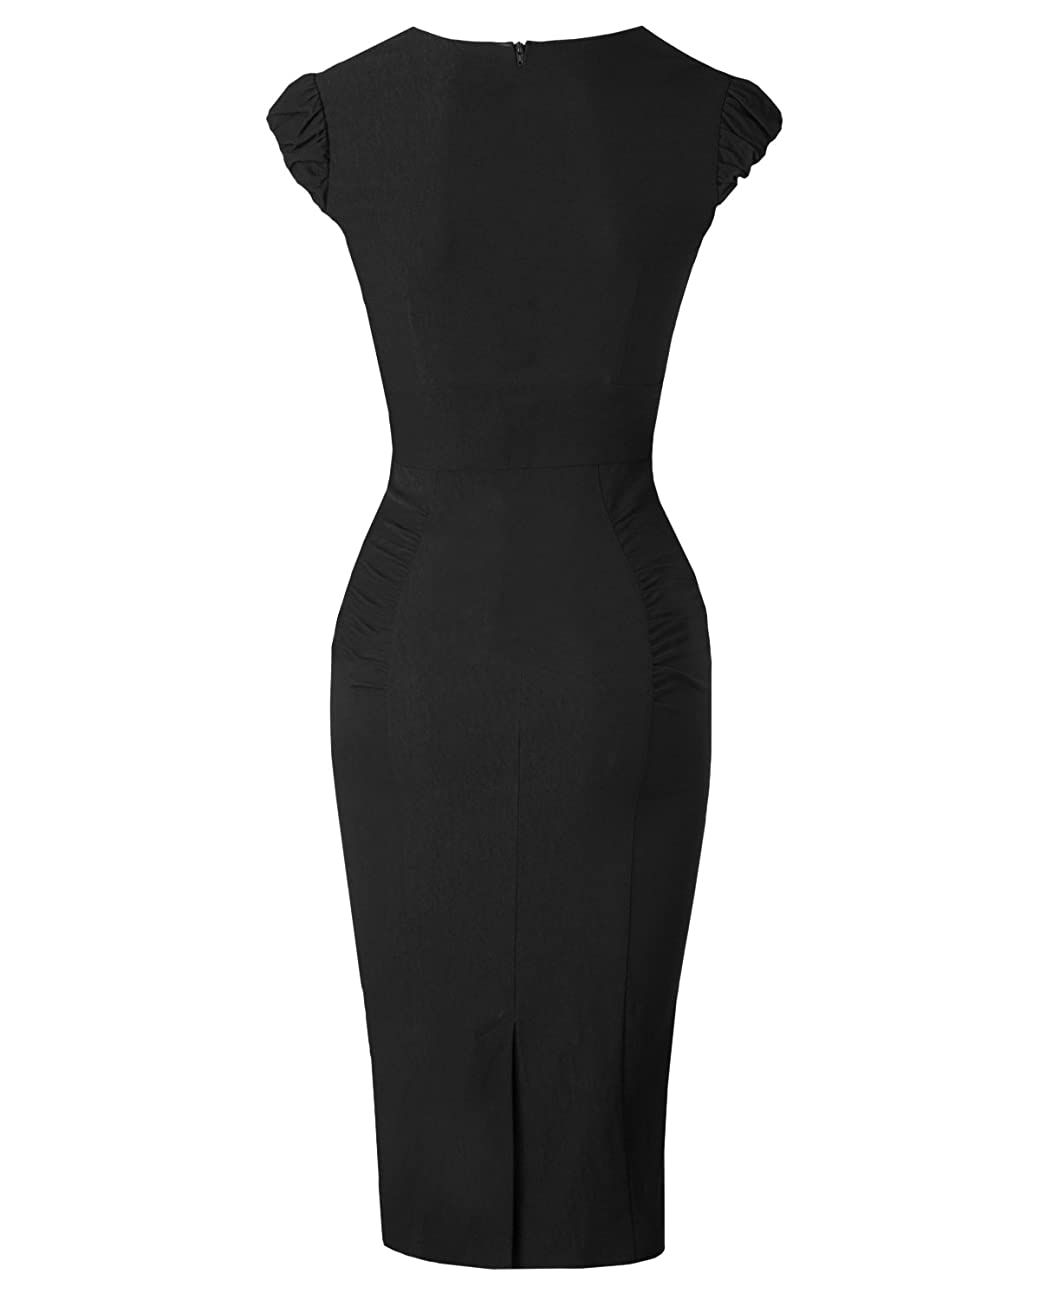 Newdow Lady's 50s Vintage V-neck Capsleeve Pencil Dress 1